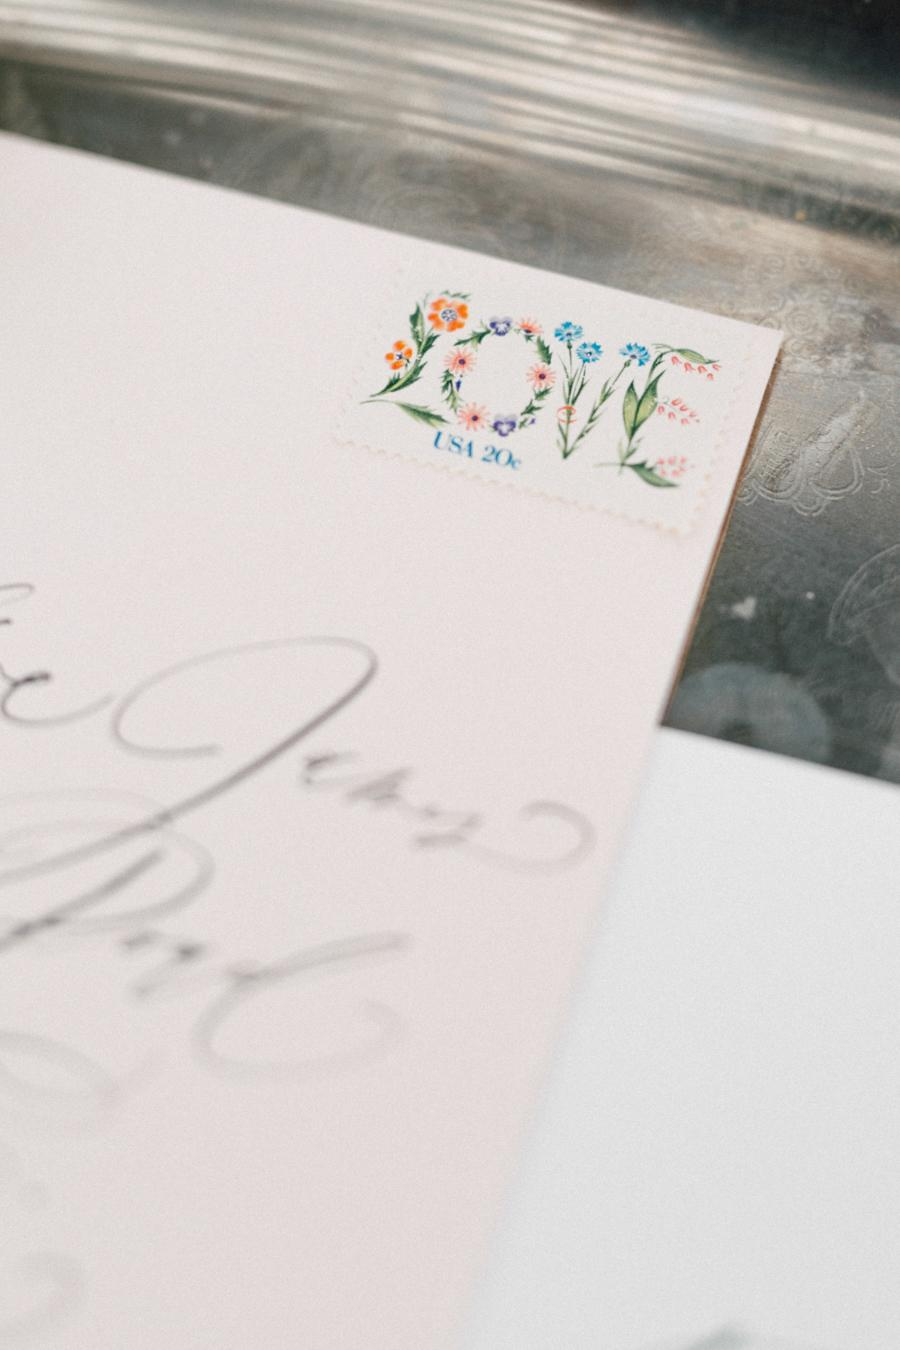 winter-garden-shoot-stationery-love-stamp.jpg